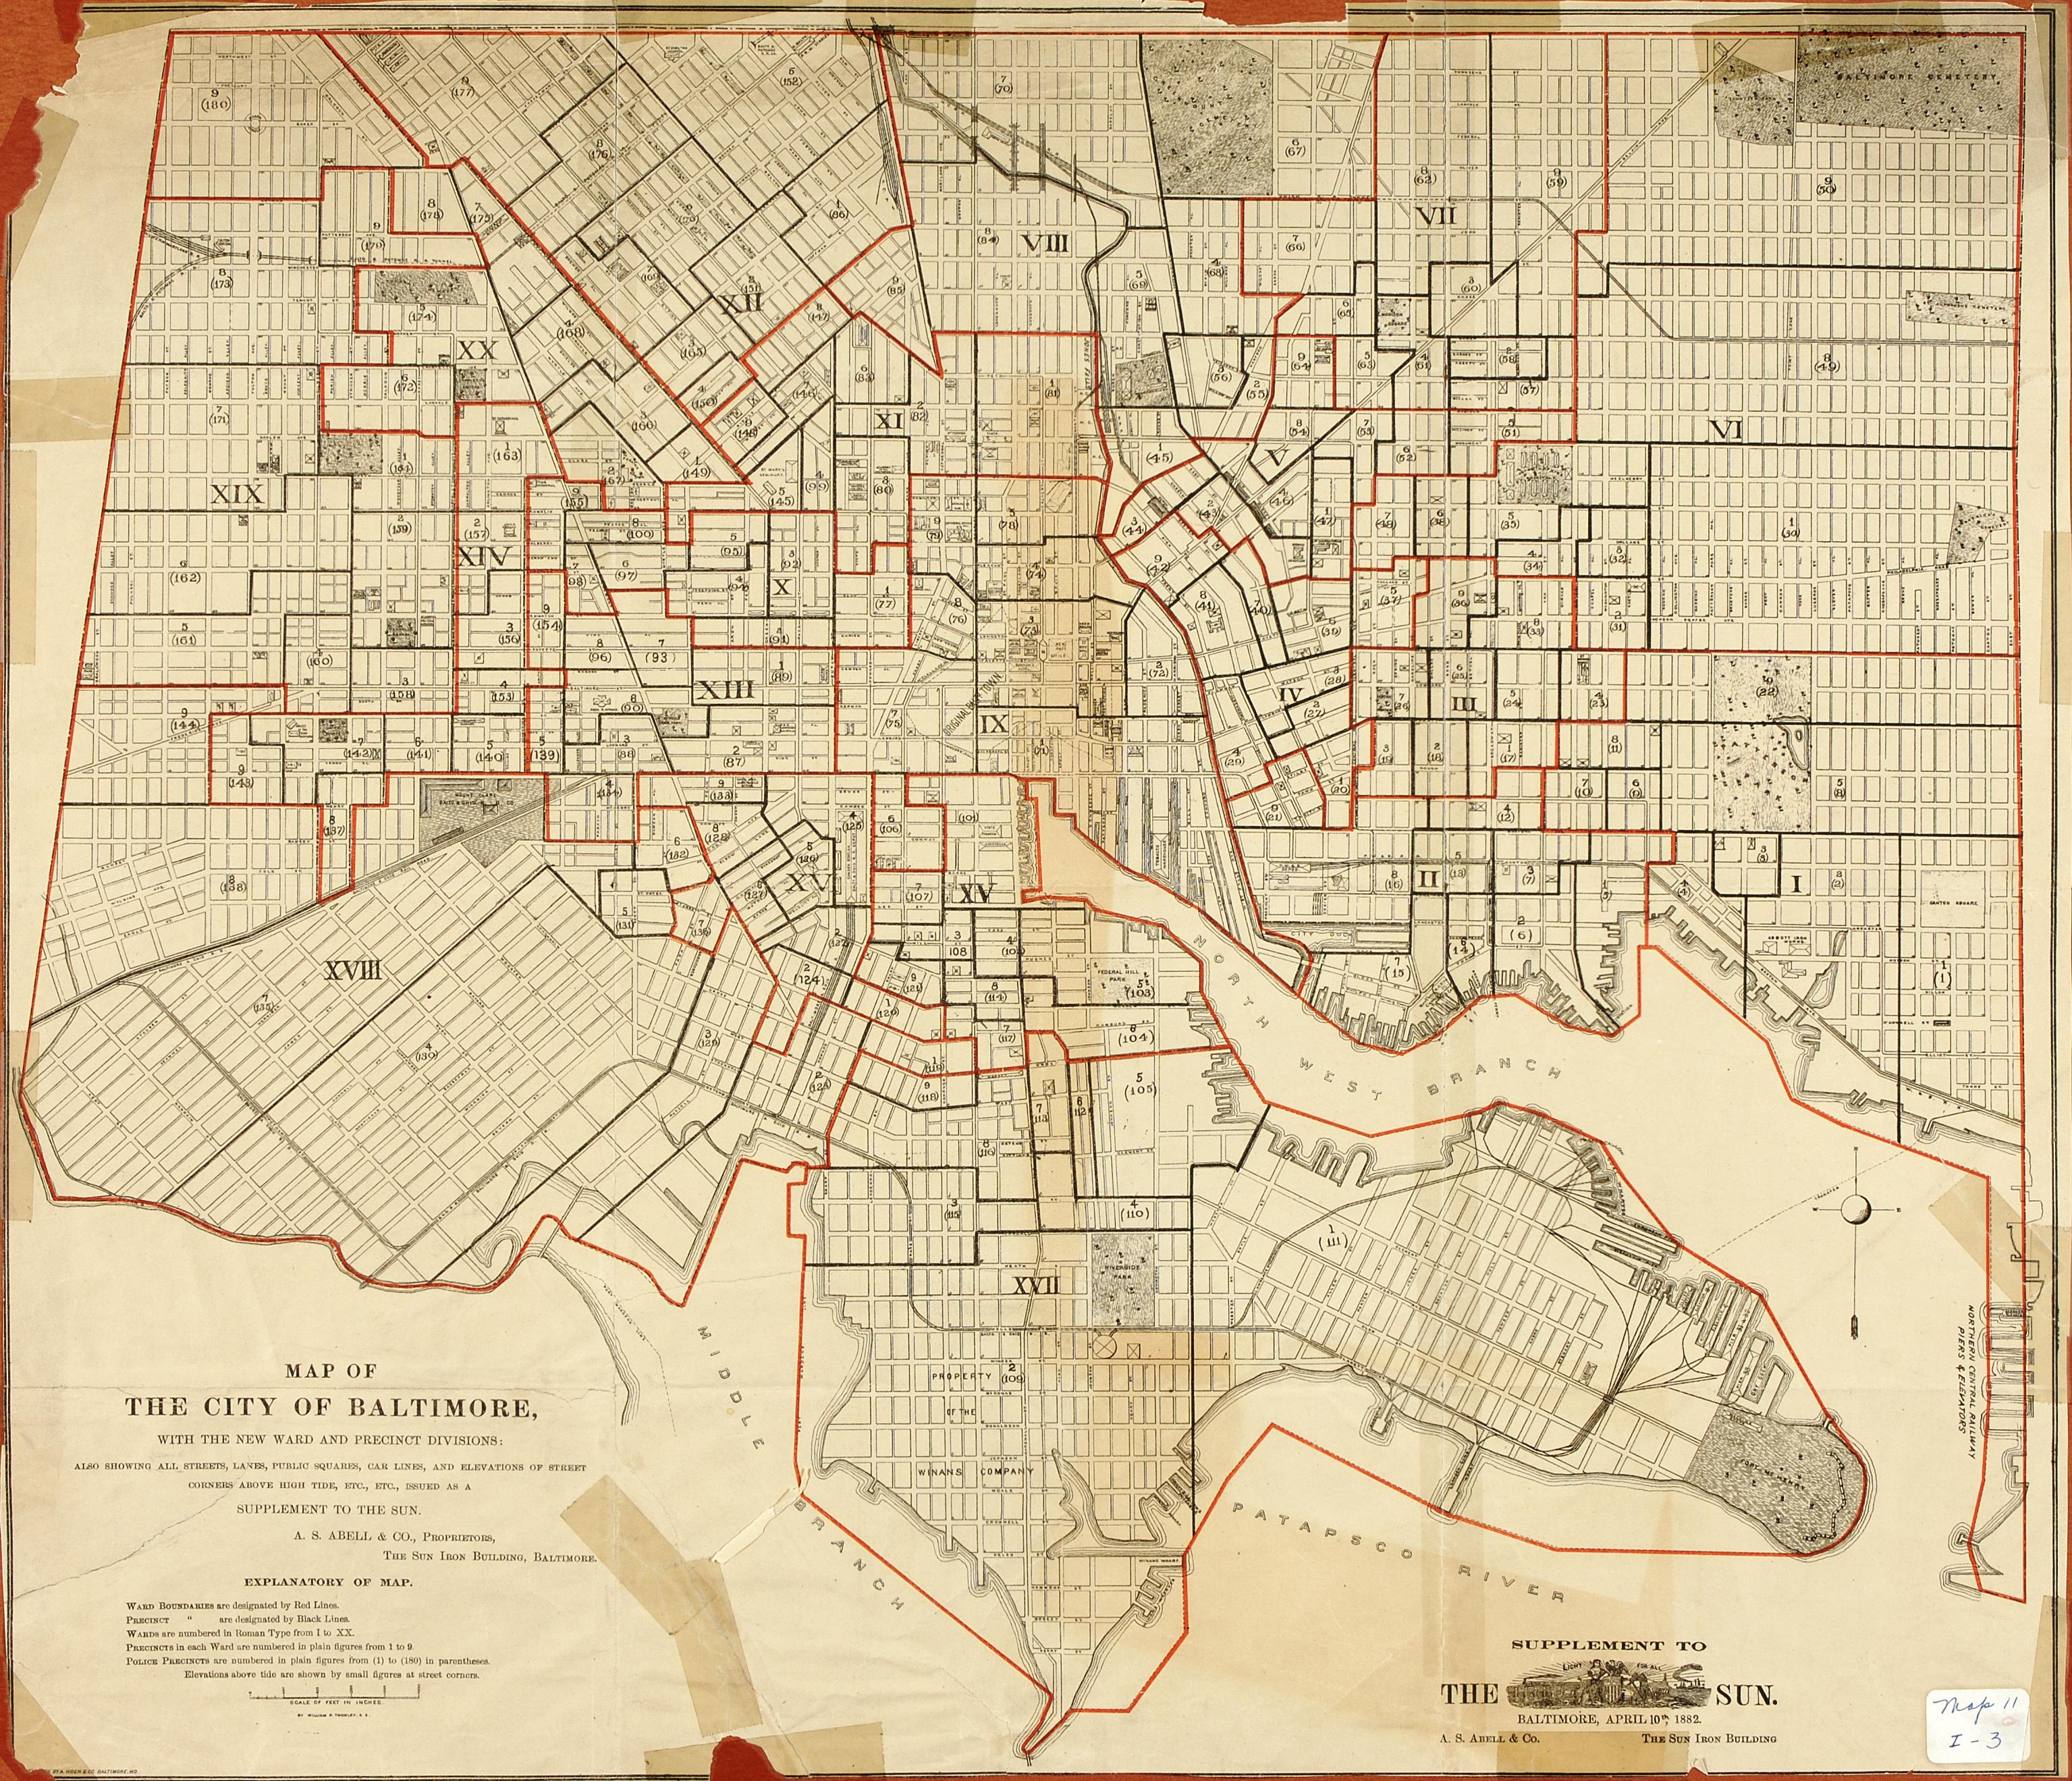 1882 map of Baltimore With New Wards